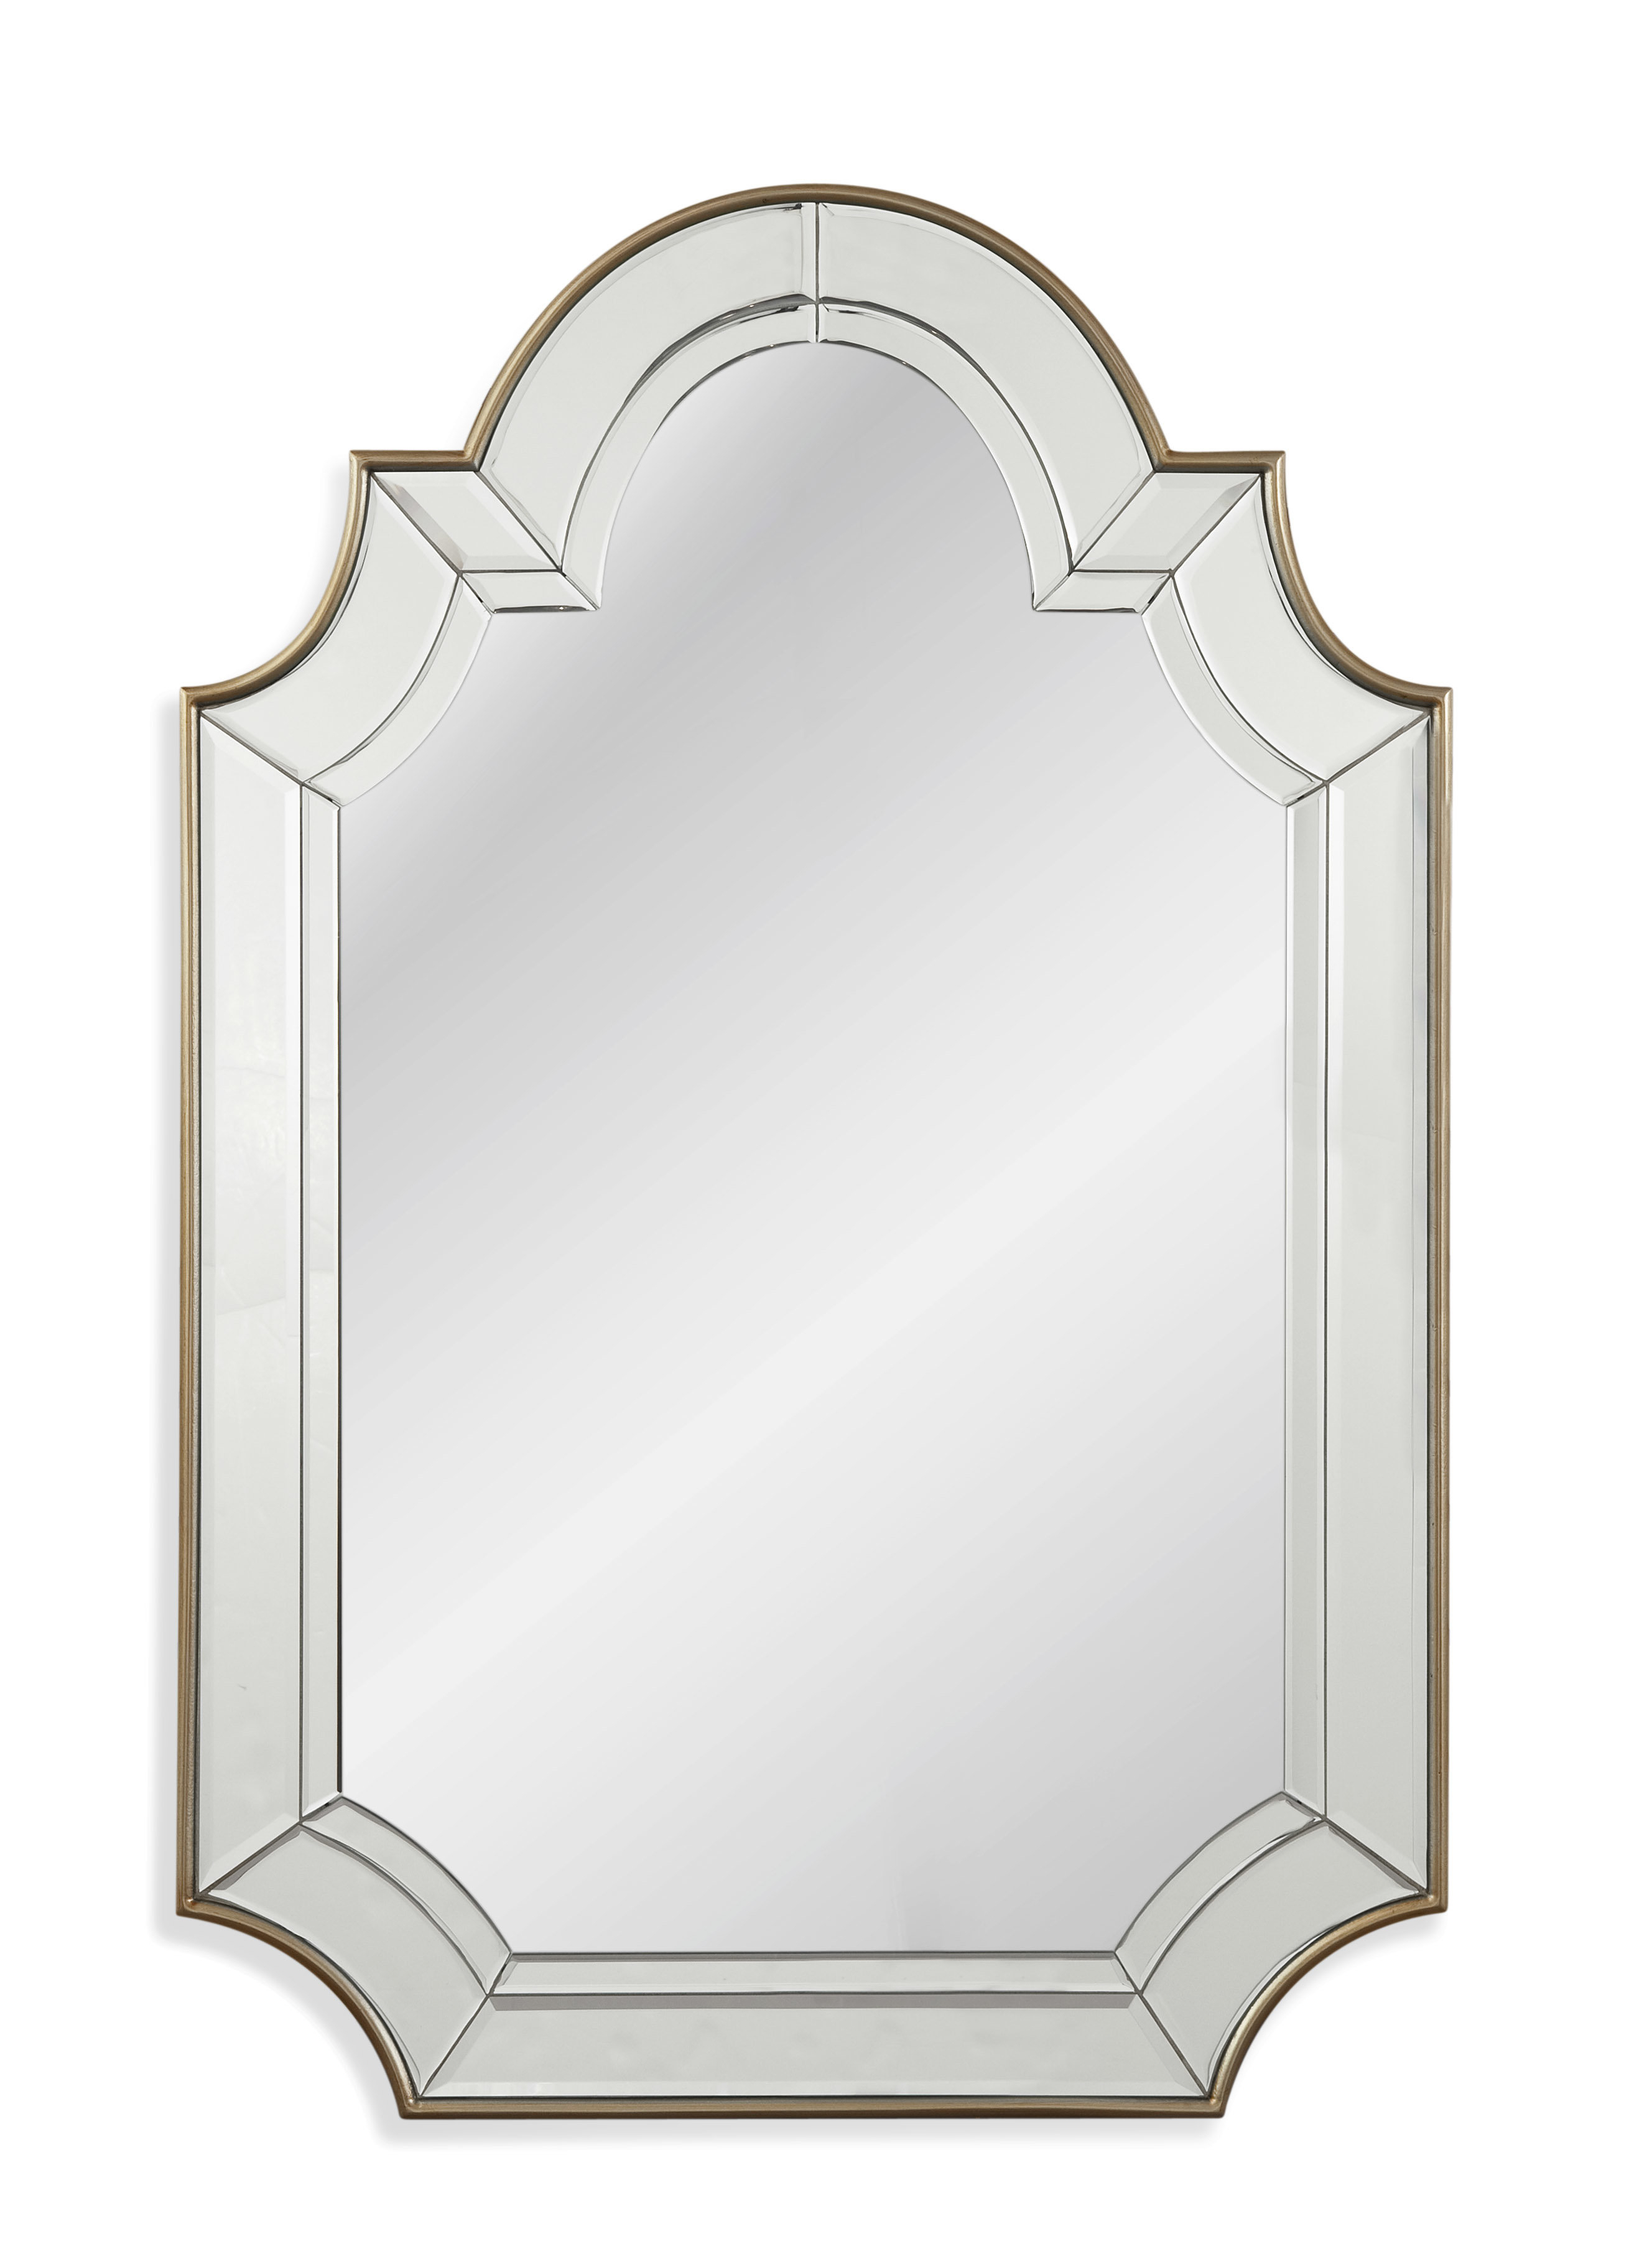 Arch/crowned Top Champagne Wall Mirror Intended For Dariel Tall Arched Scalloped Wall Mirrors (Image 4 of 20)